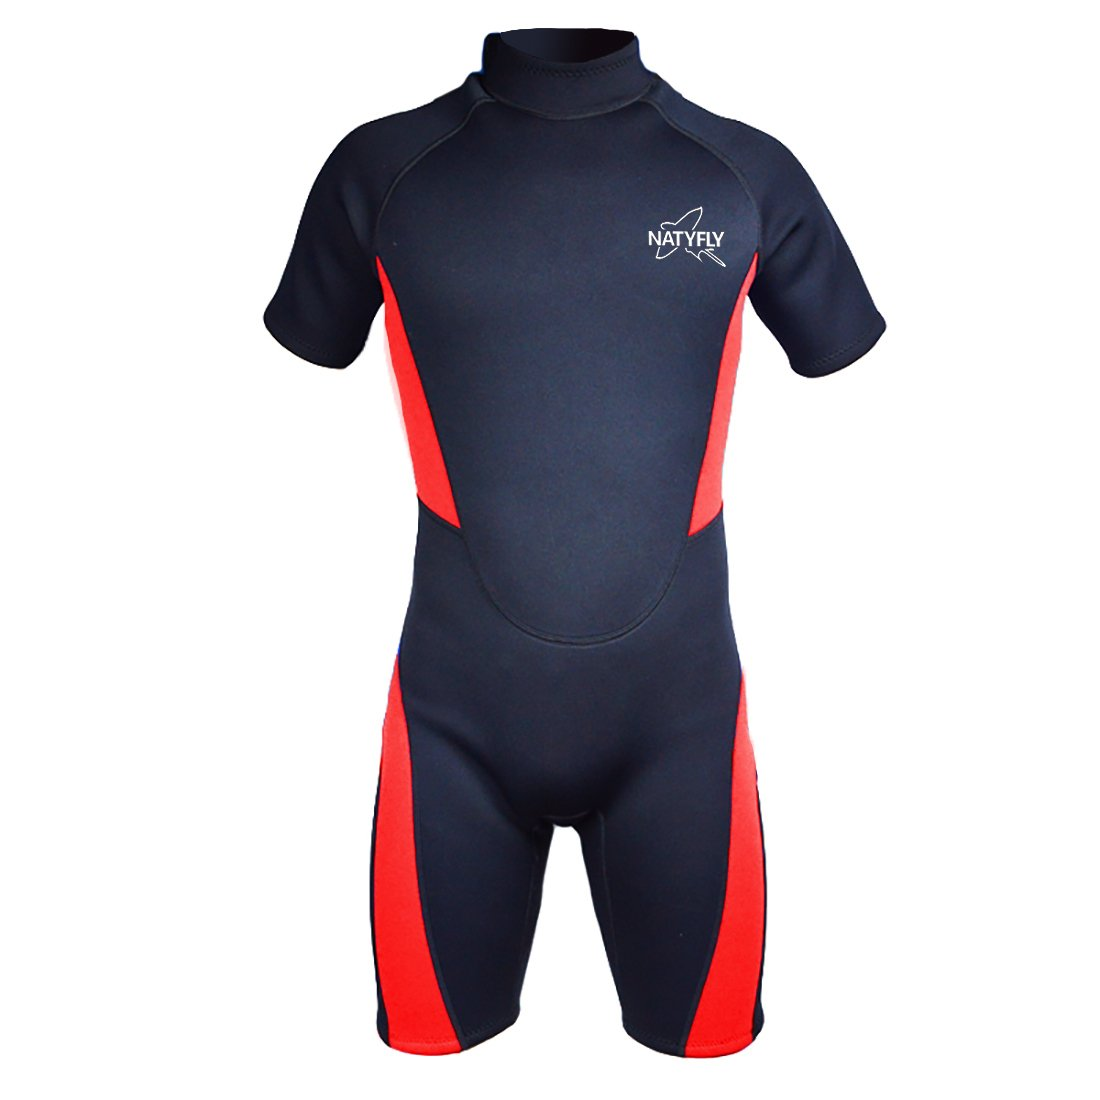 NATYFLY Wetsuit Men 3mm Neoprene Shorty Surfing Wetsuits for Women(Red,M)